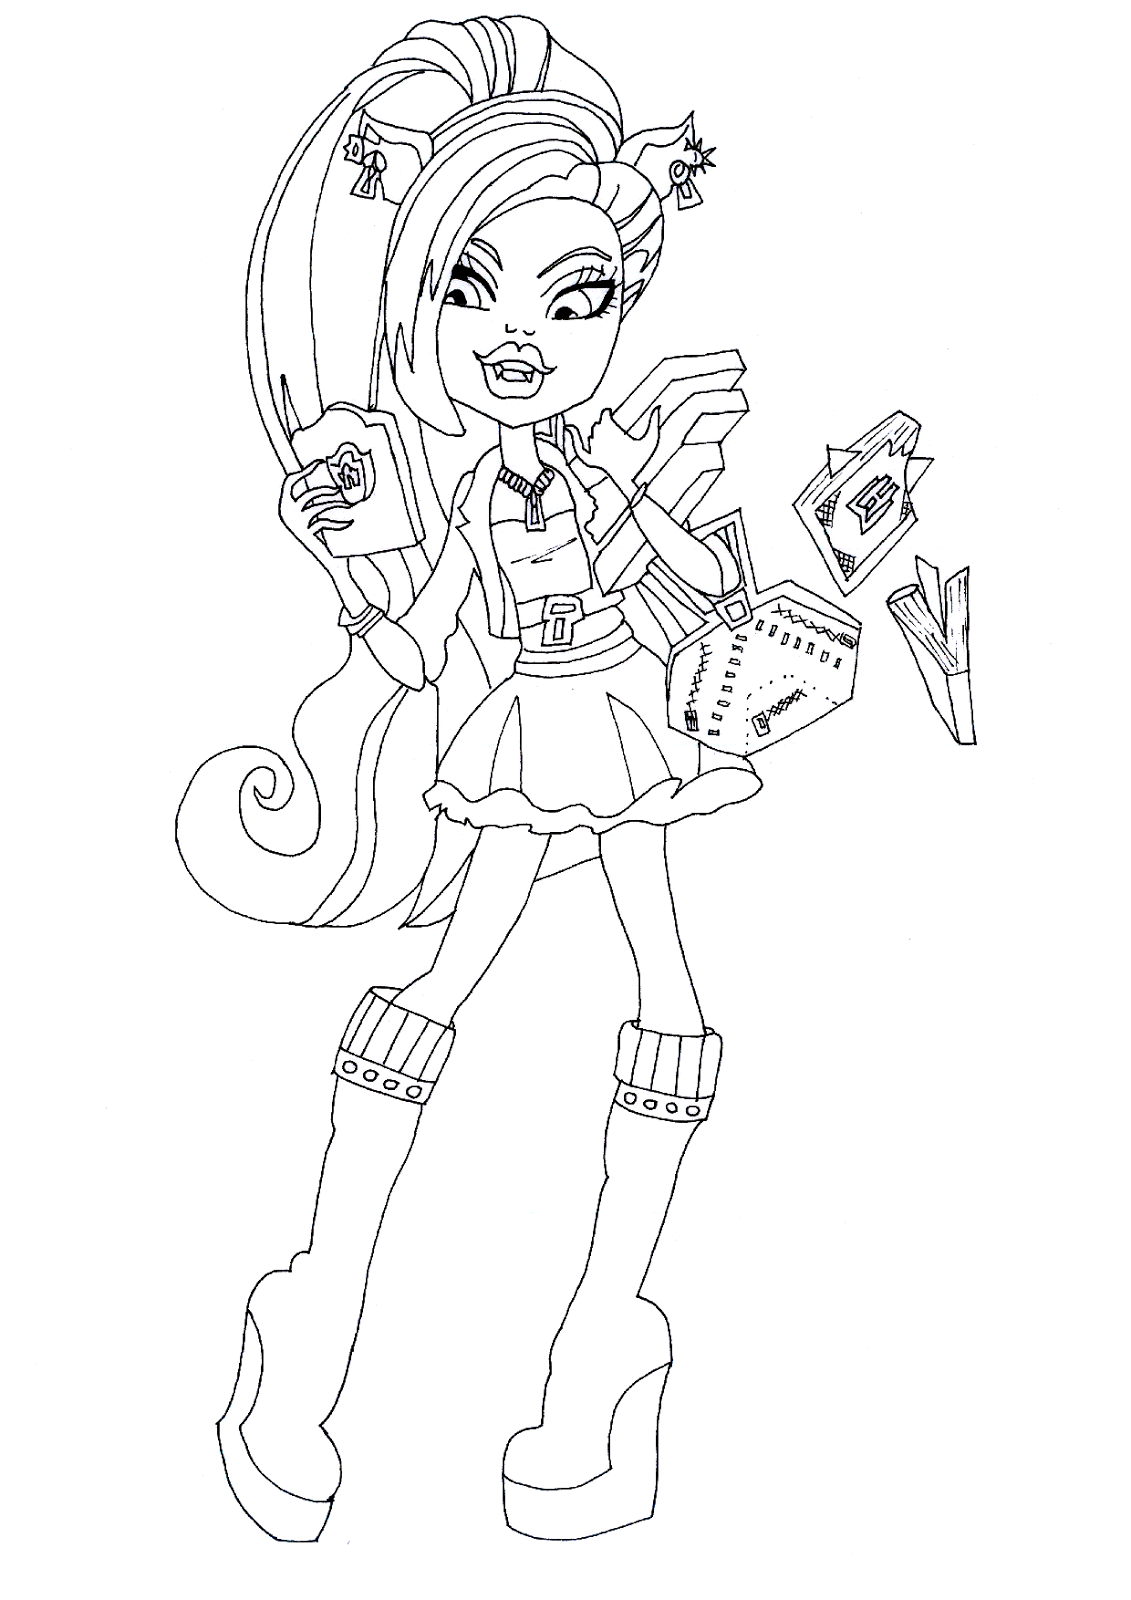 Monster High Clawdeen Wolf Drawing at GetDrawings | Free ...